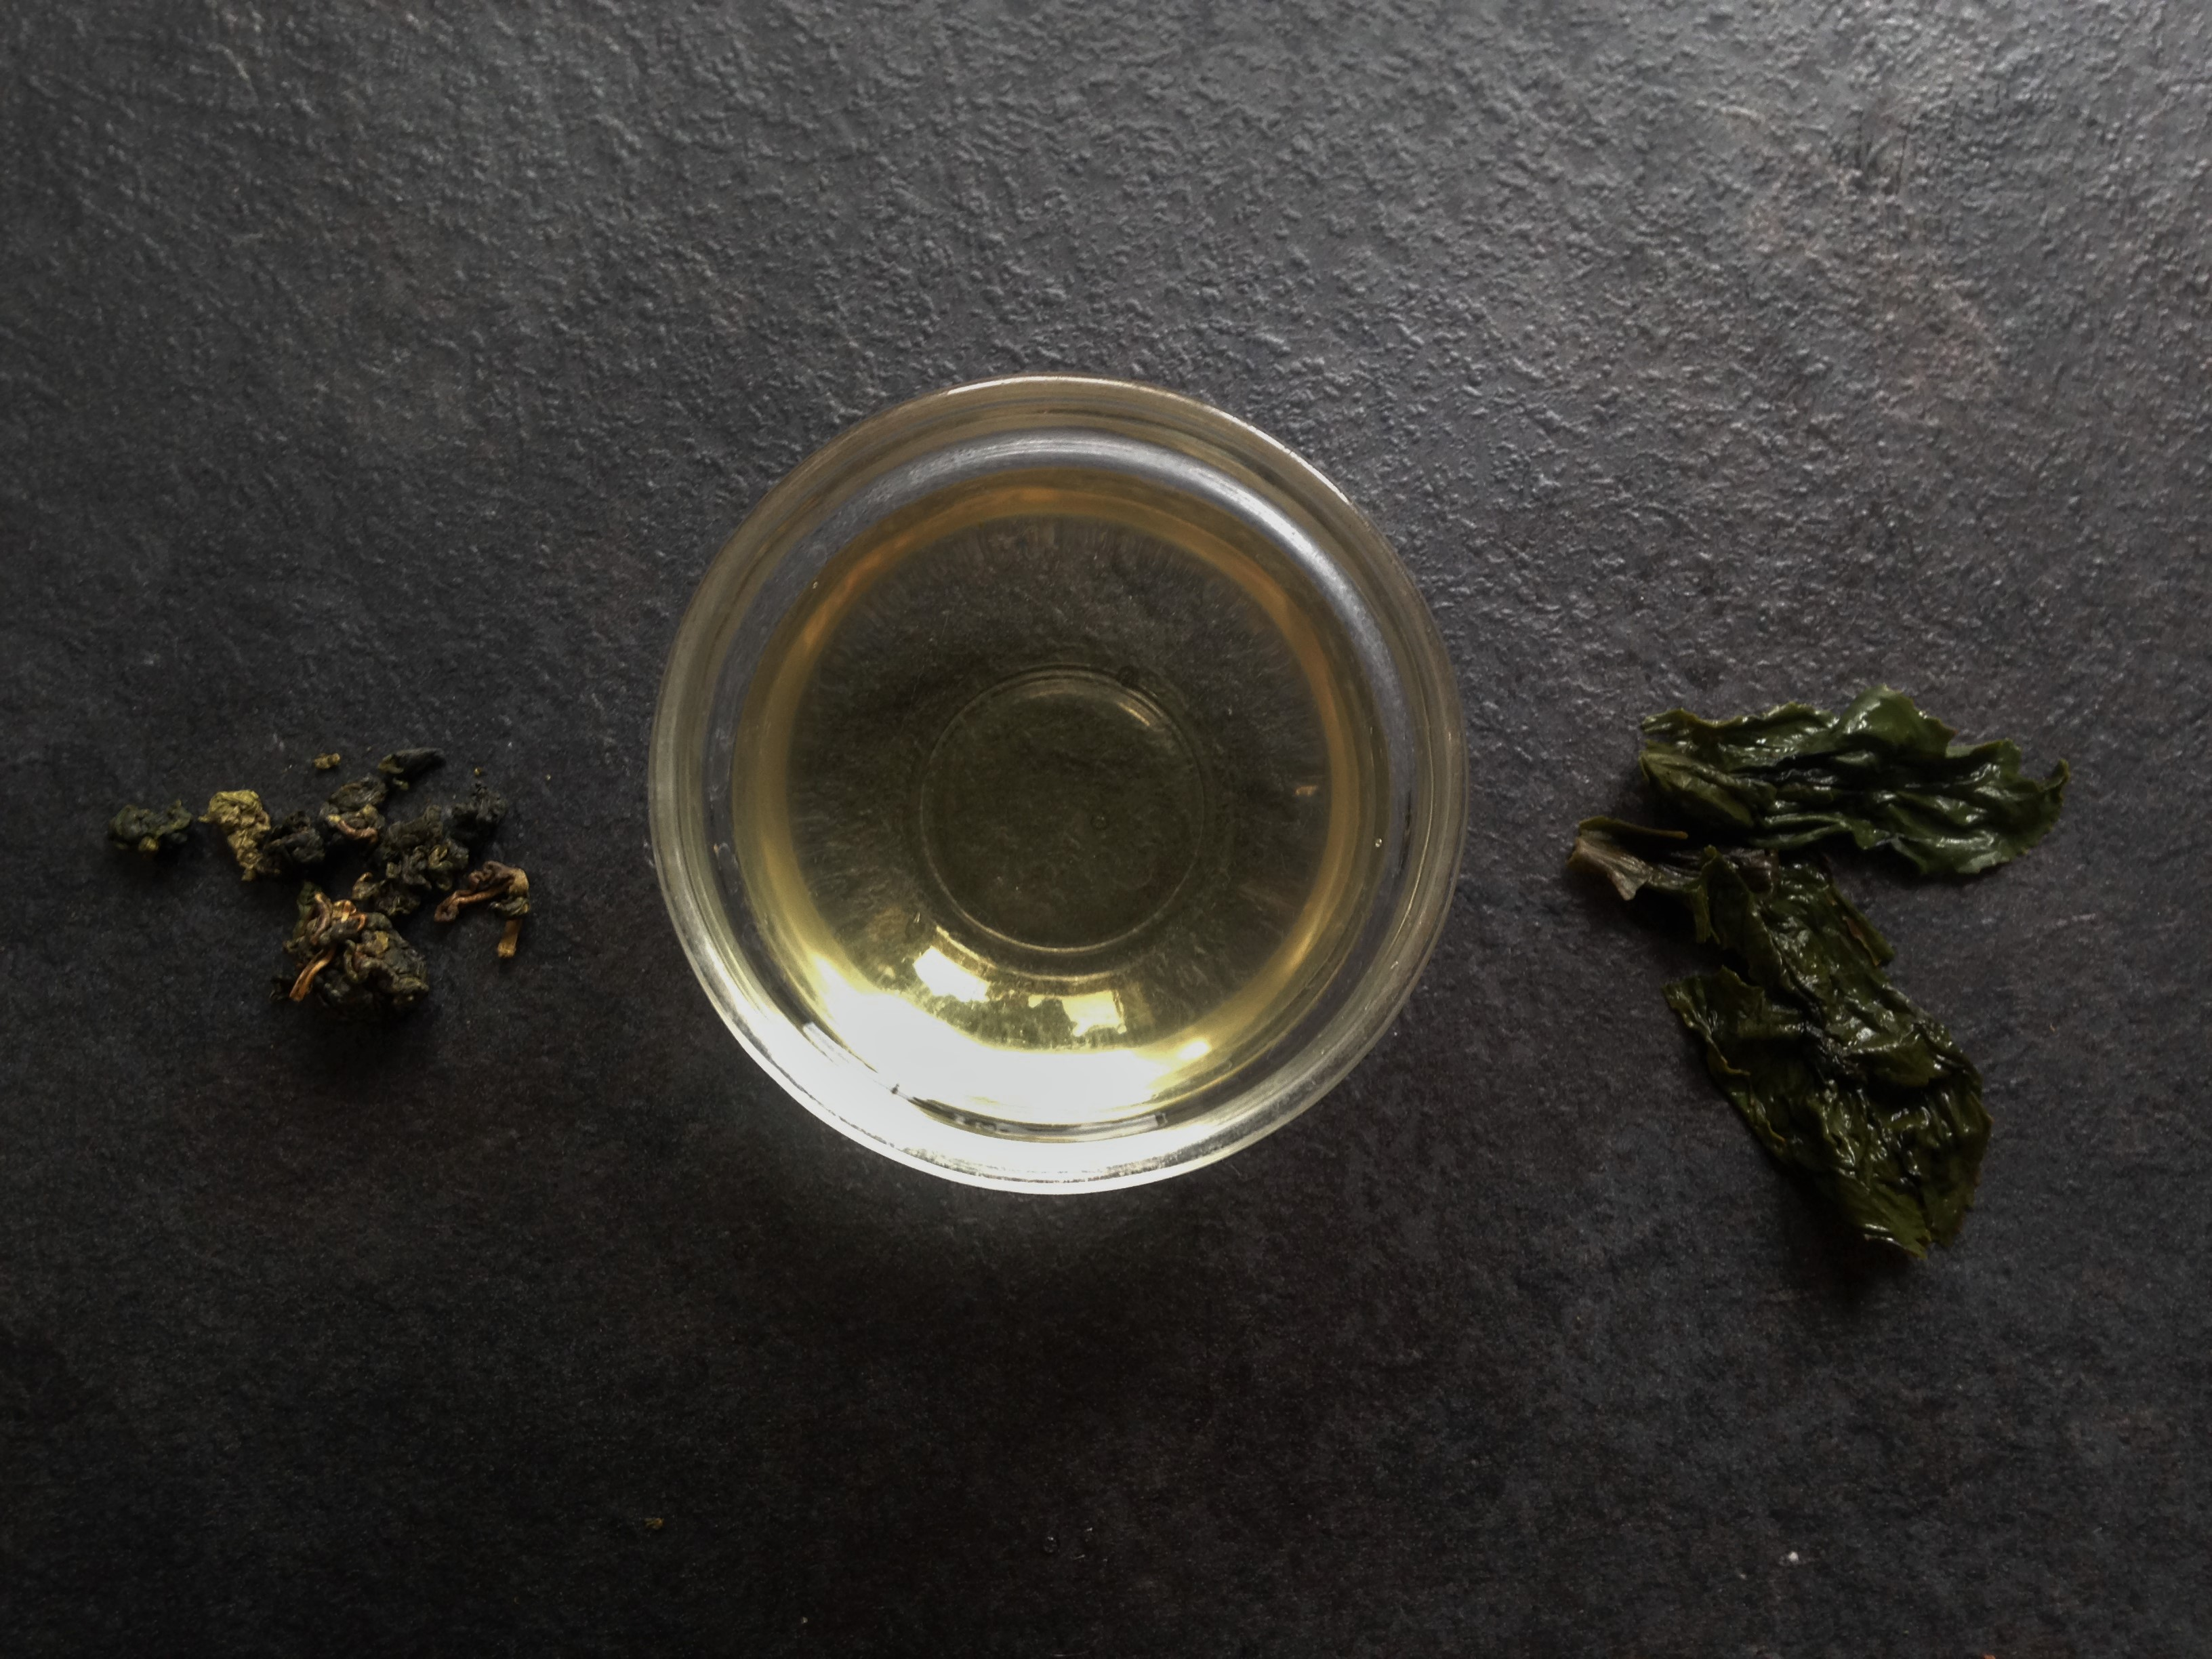 Indonesian Pearls Green Tea Baraka Teas